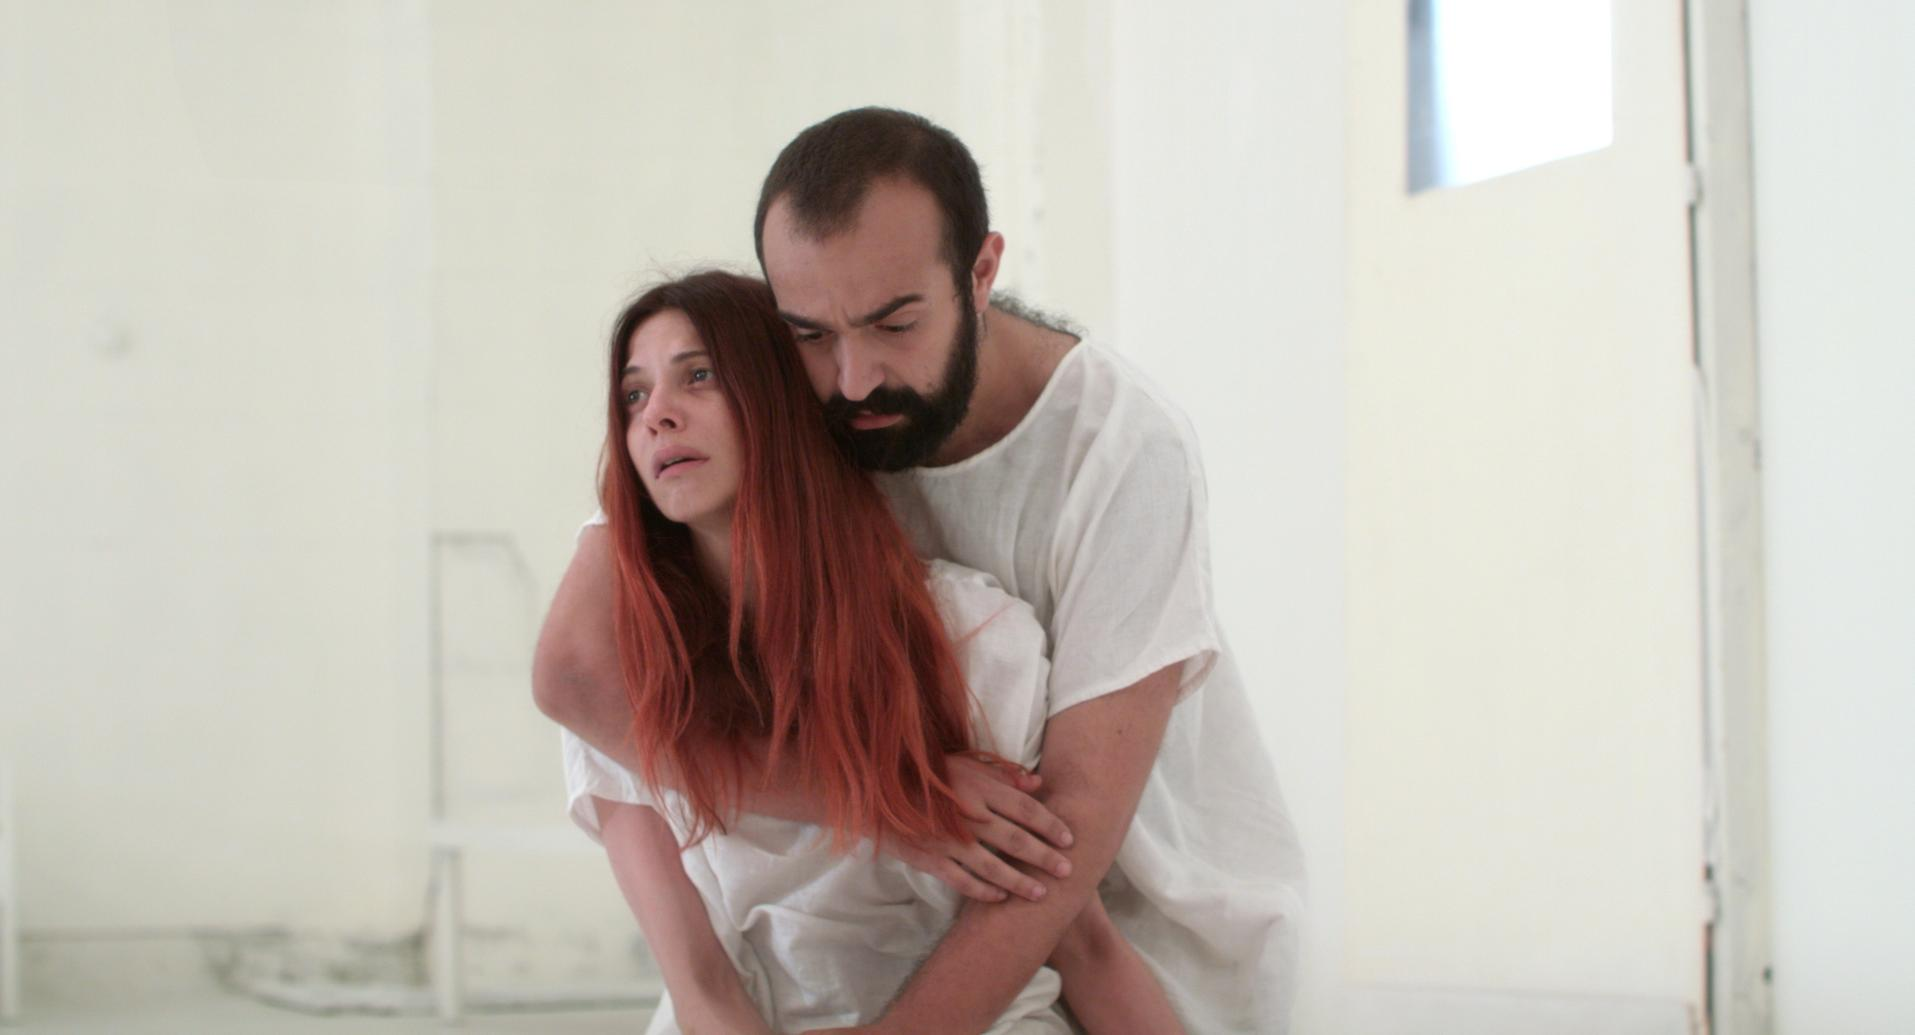 Salvatore Lanza and Roberta Stellato in Alice and the Land That Wonders (2020)